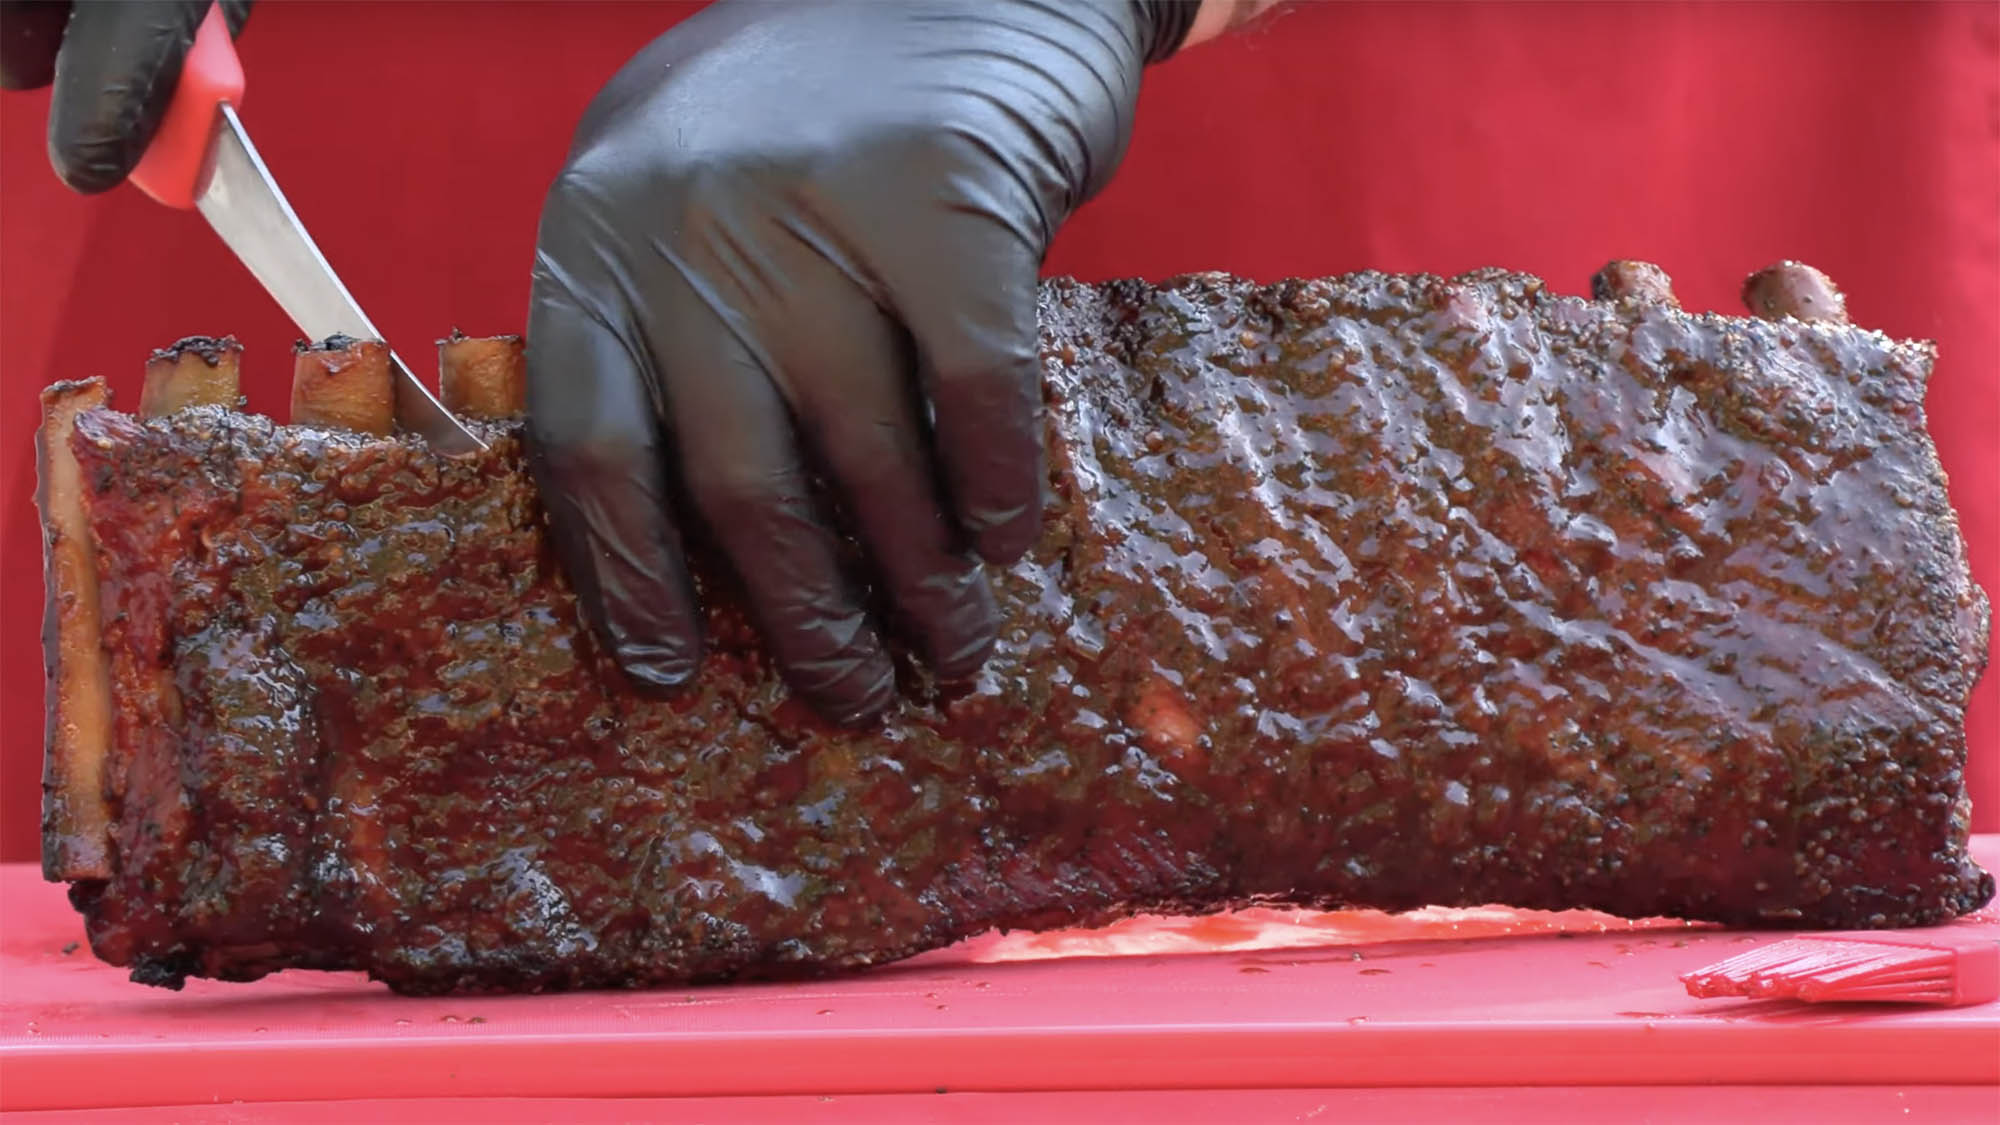 Close shot of gloved hands holding and cutting through barbecue spare ribs on a red tabletop.